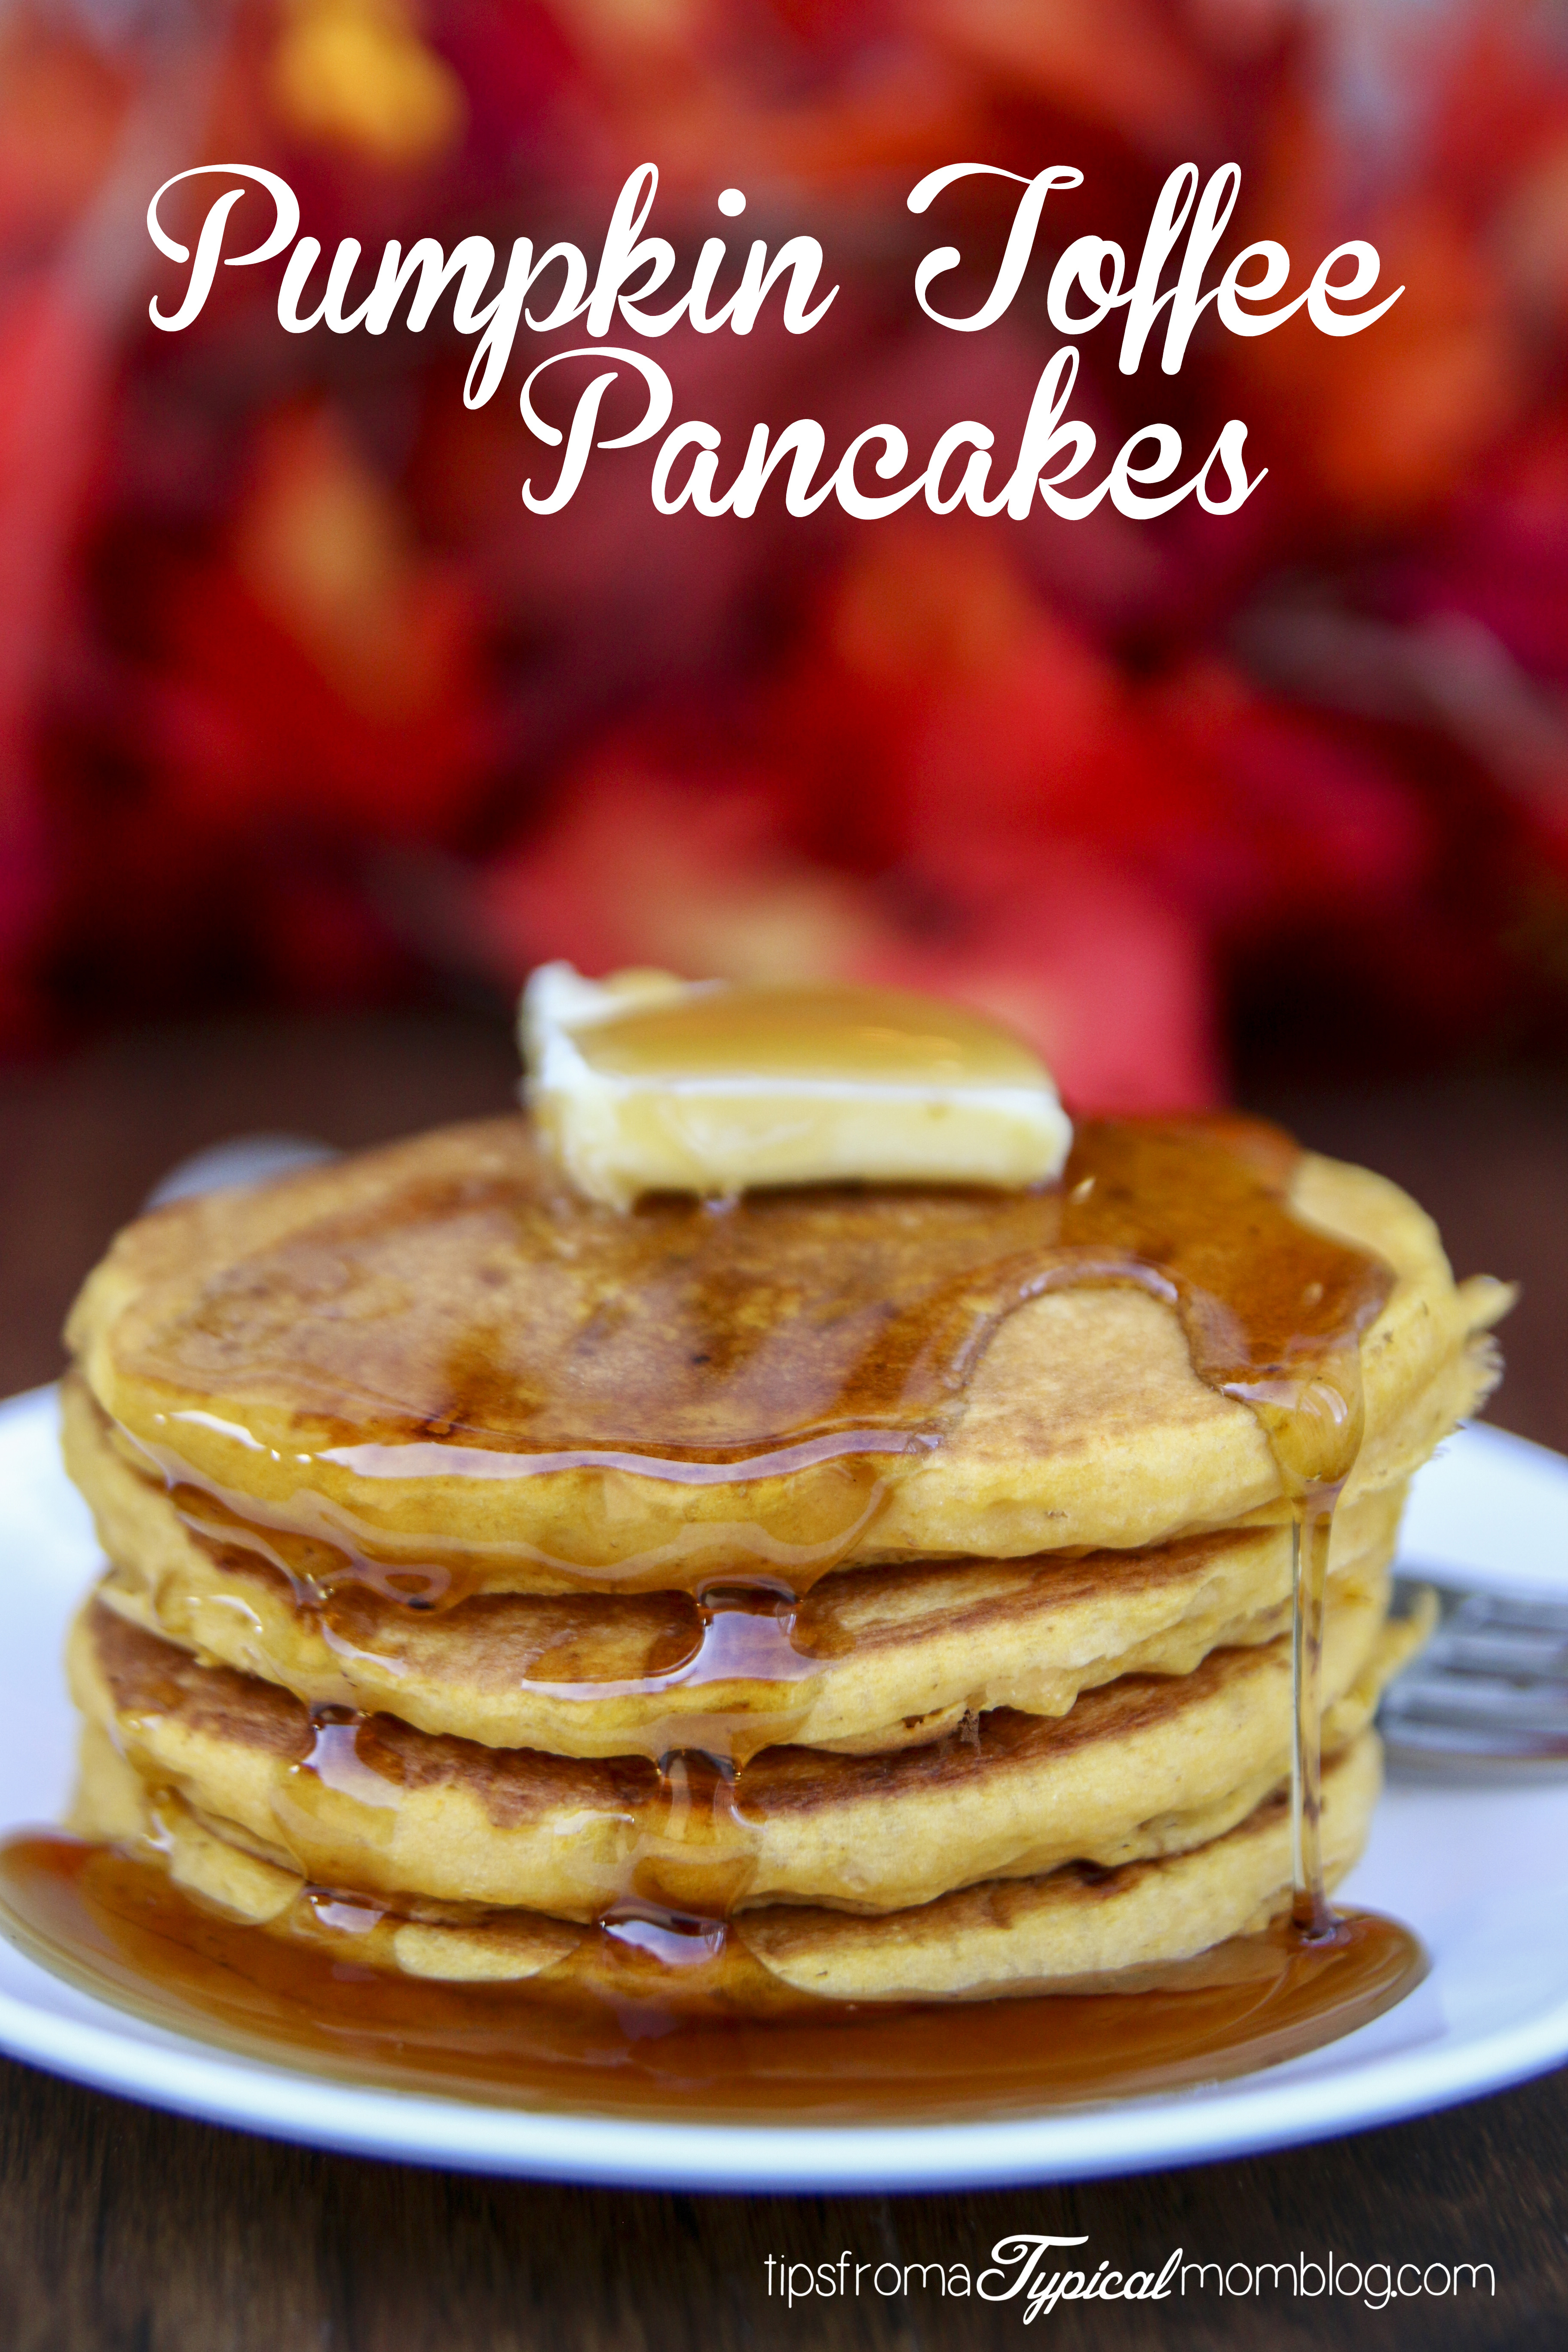 Pancakes 556 all new how to make aunt jemima pancake mix better better mix easy pumpkin how toffee pancakes recipe make aunt to pancake jemima ccuart Image collections